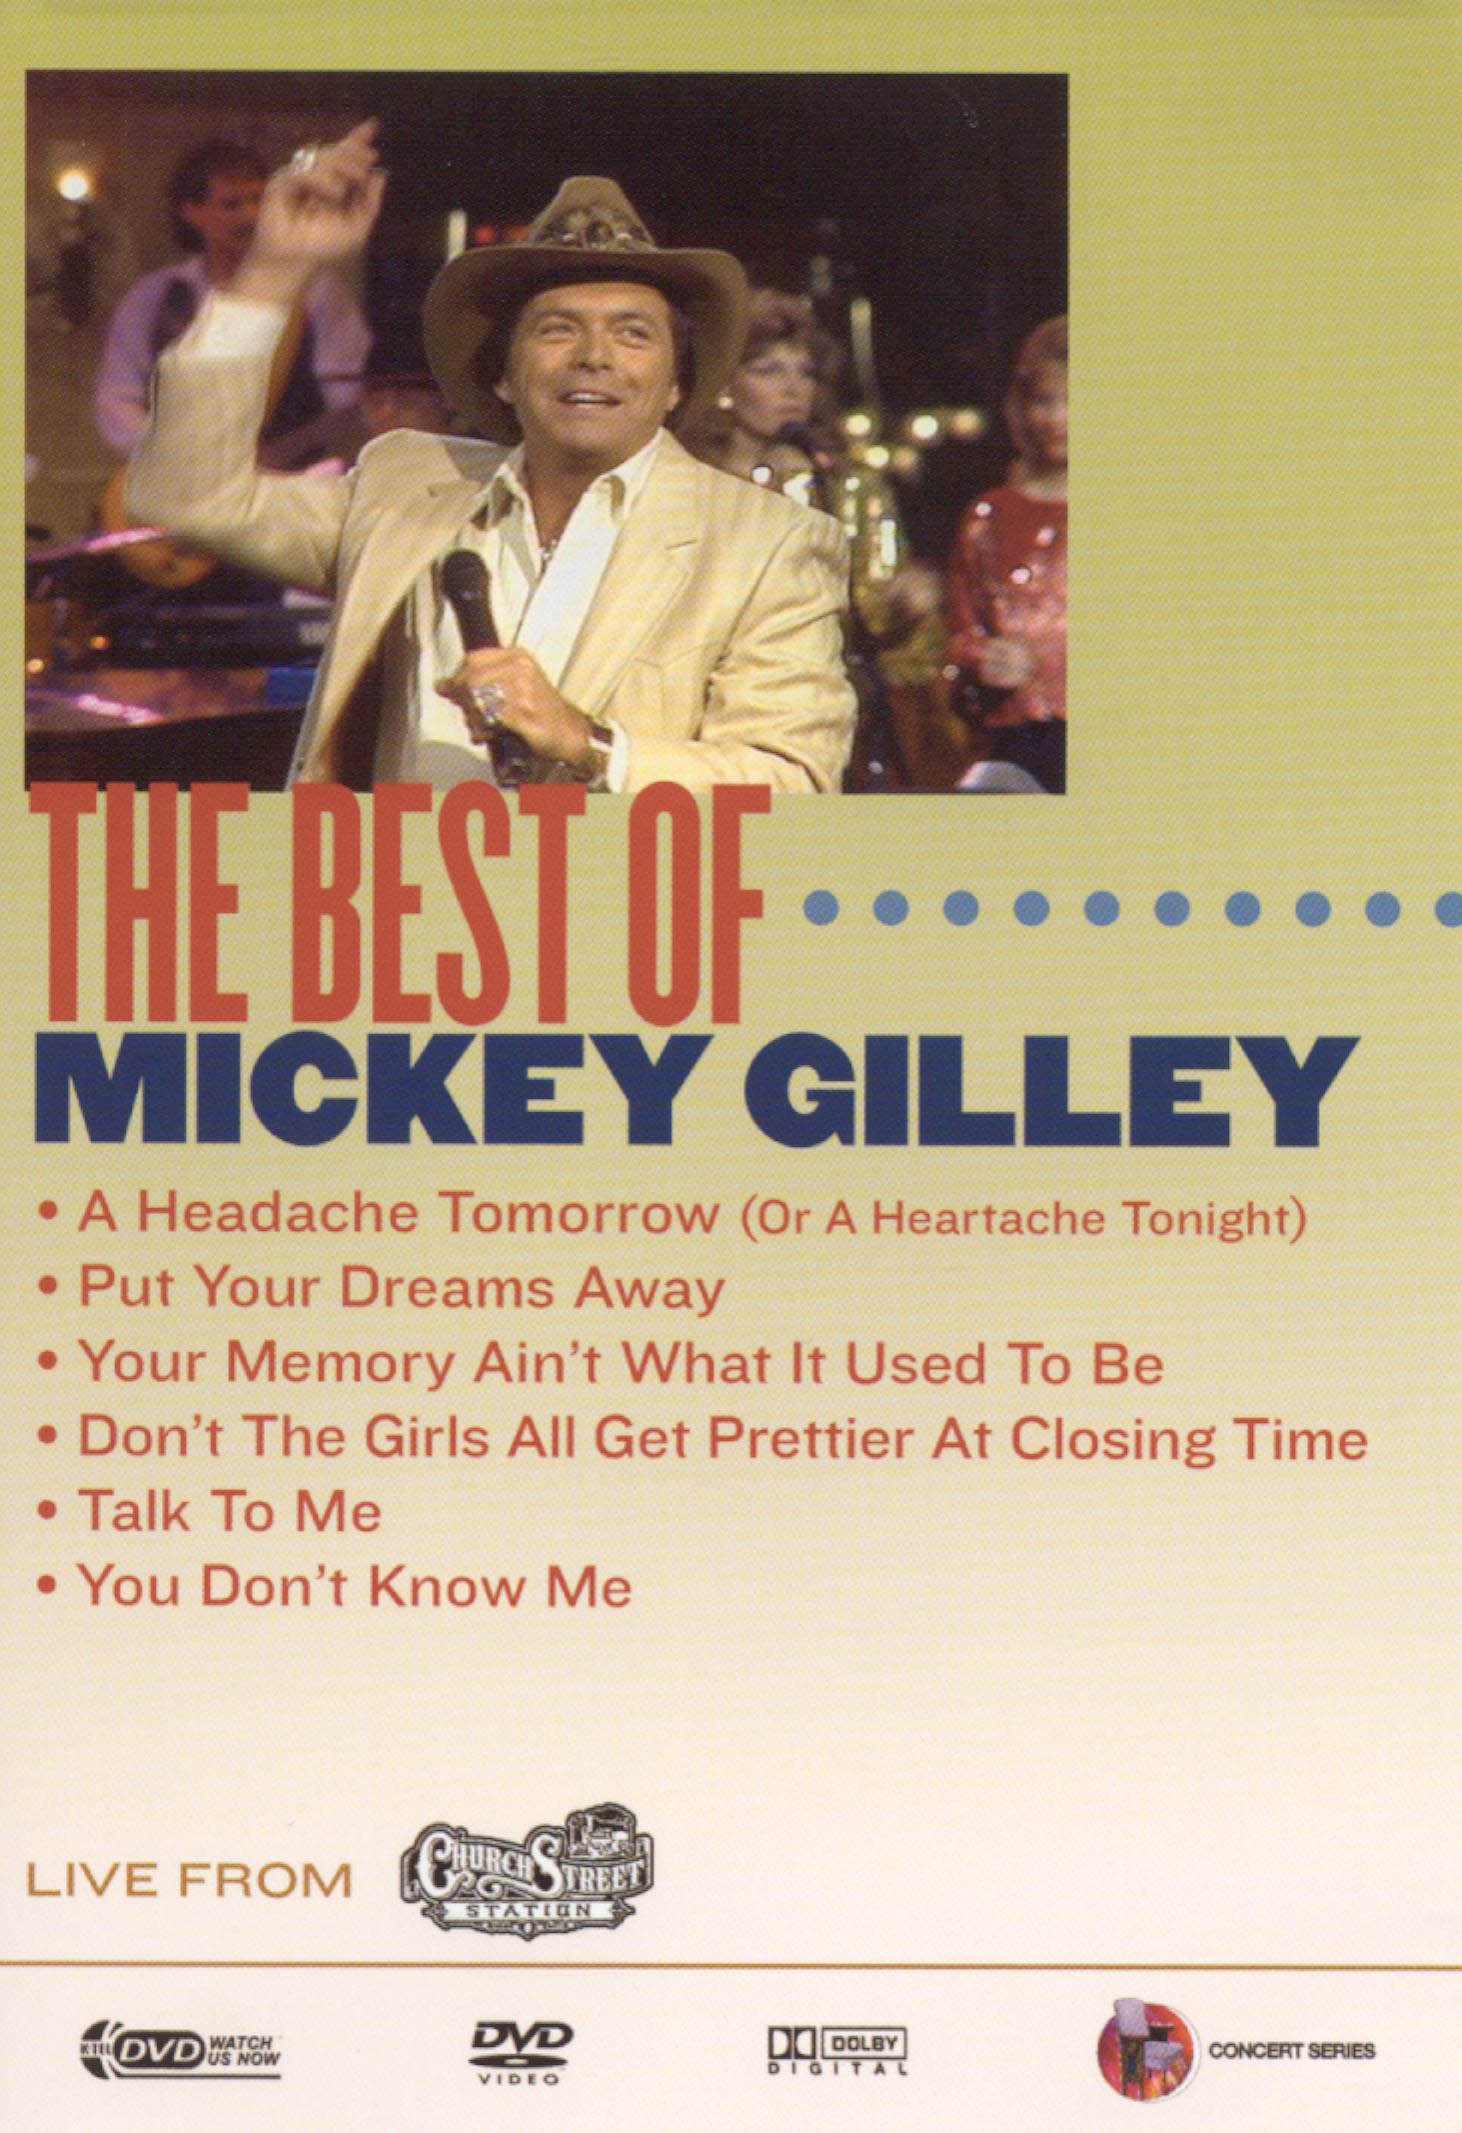 Live From Rock 'n' Roll Palace: The Best of Mickey Gilley